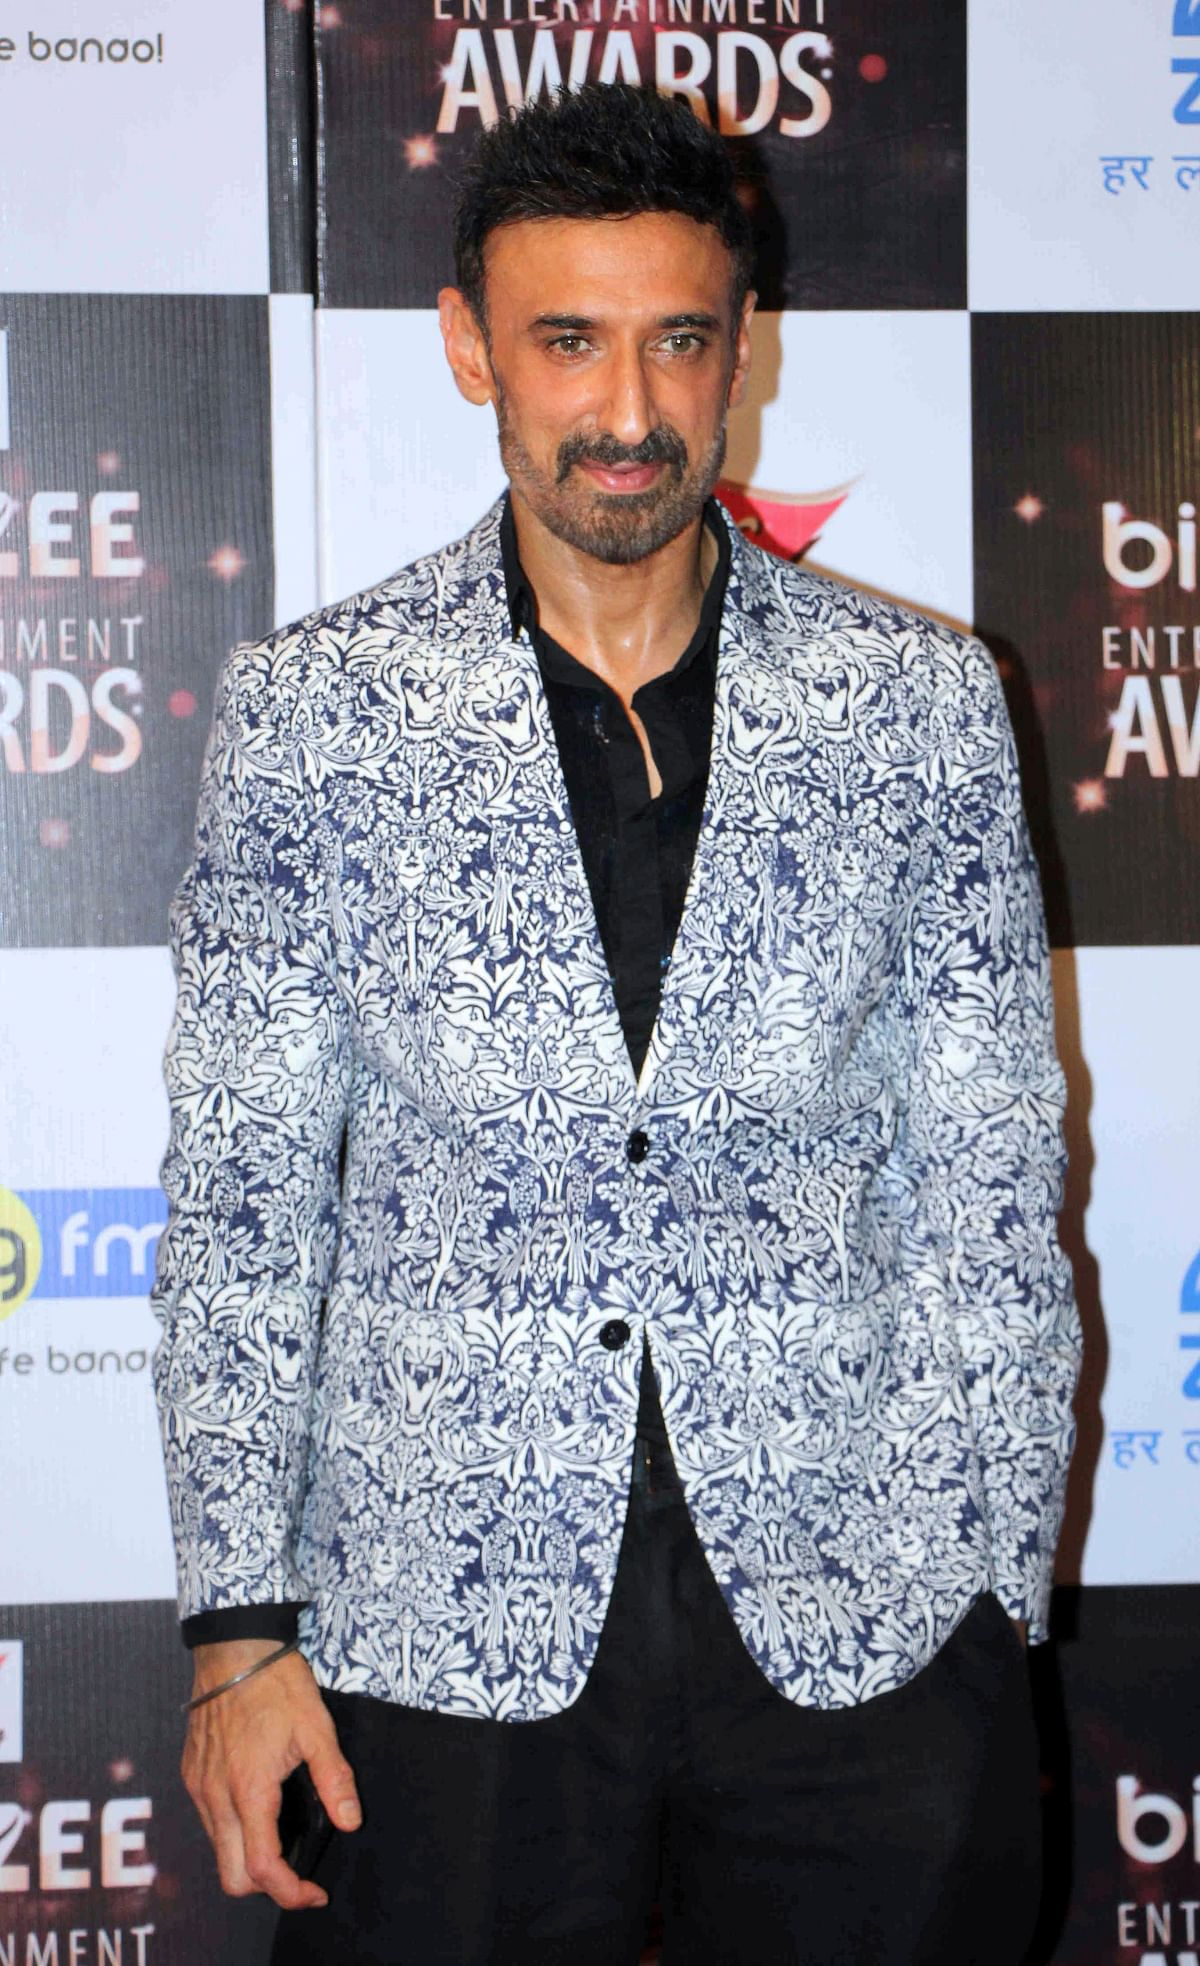 In this photograph taken on July 29, 2017, Indian Bollywood actor Rahul Dev attends the BIG ZEE Entertainment Awards 2017 ceremony in Mumbai. / AFP PHOTO / STR